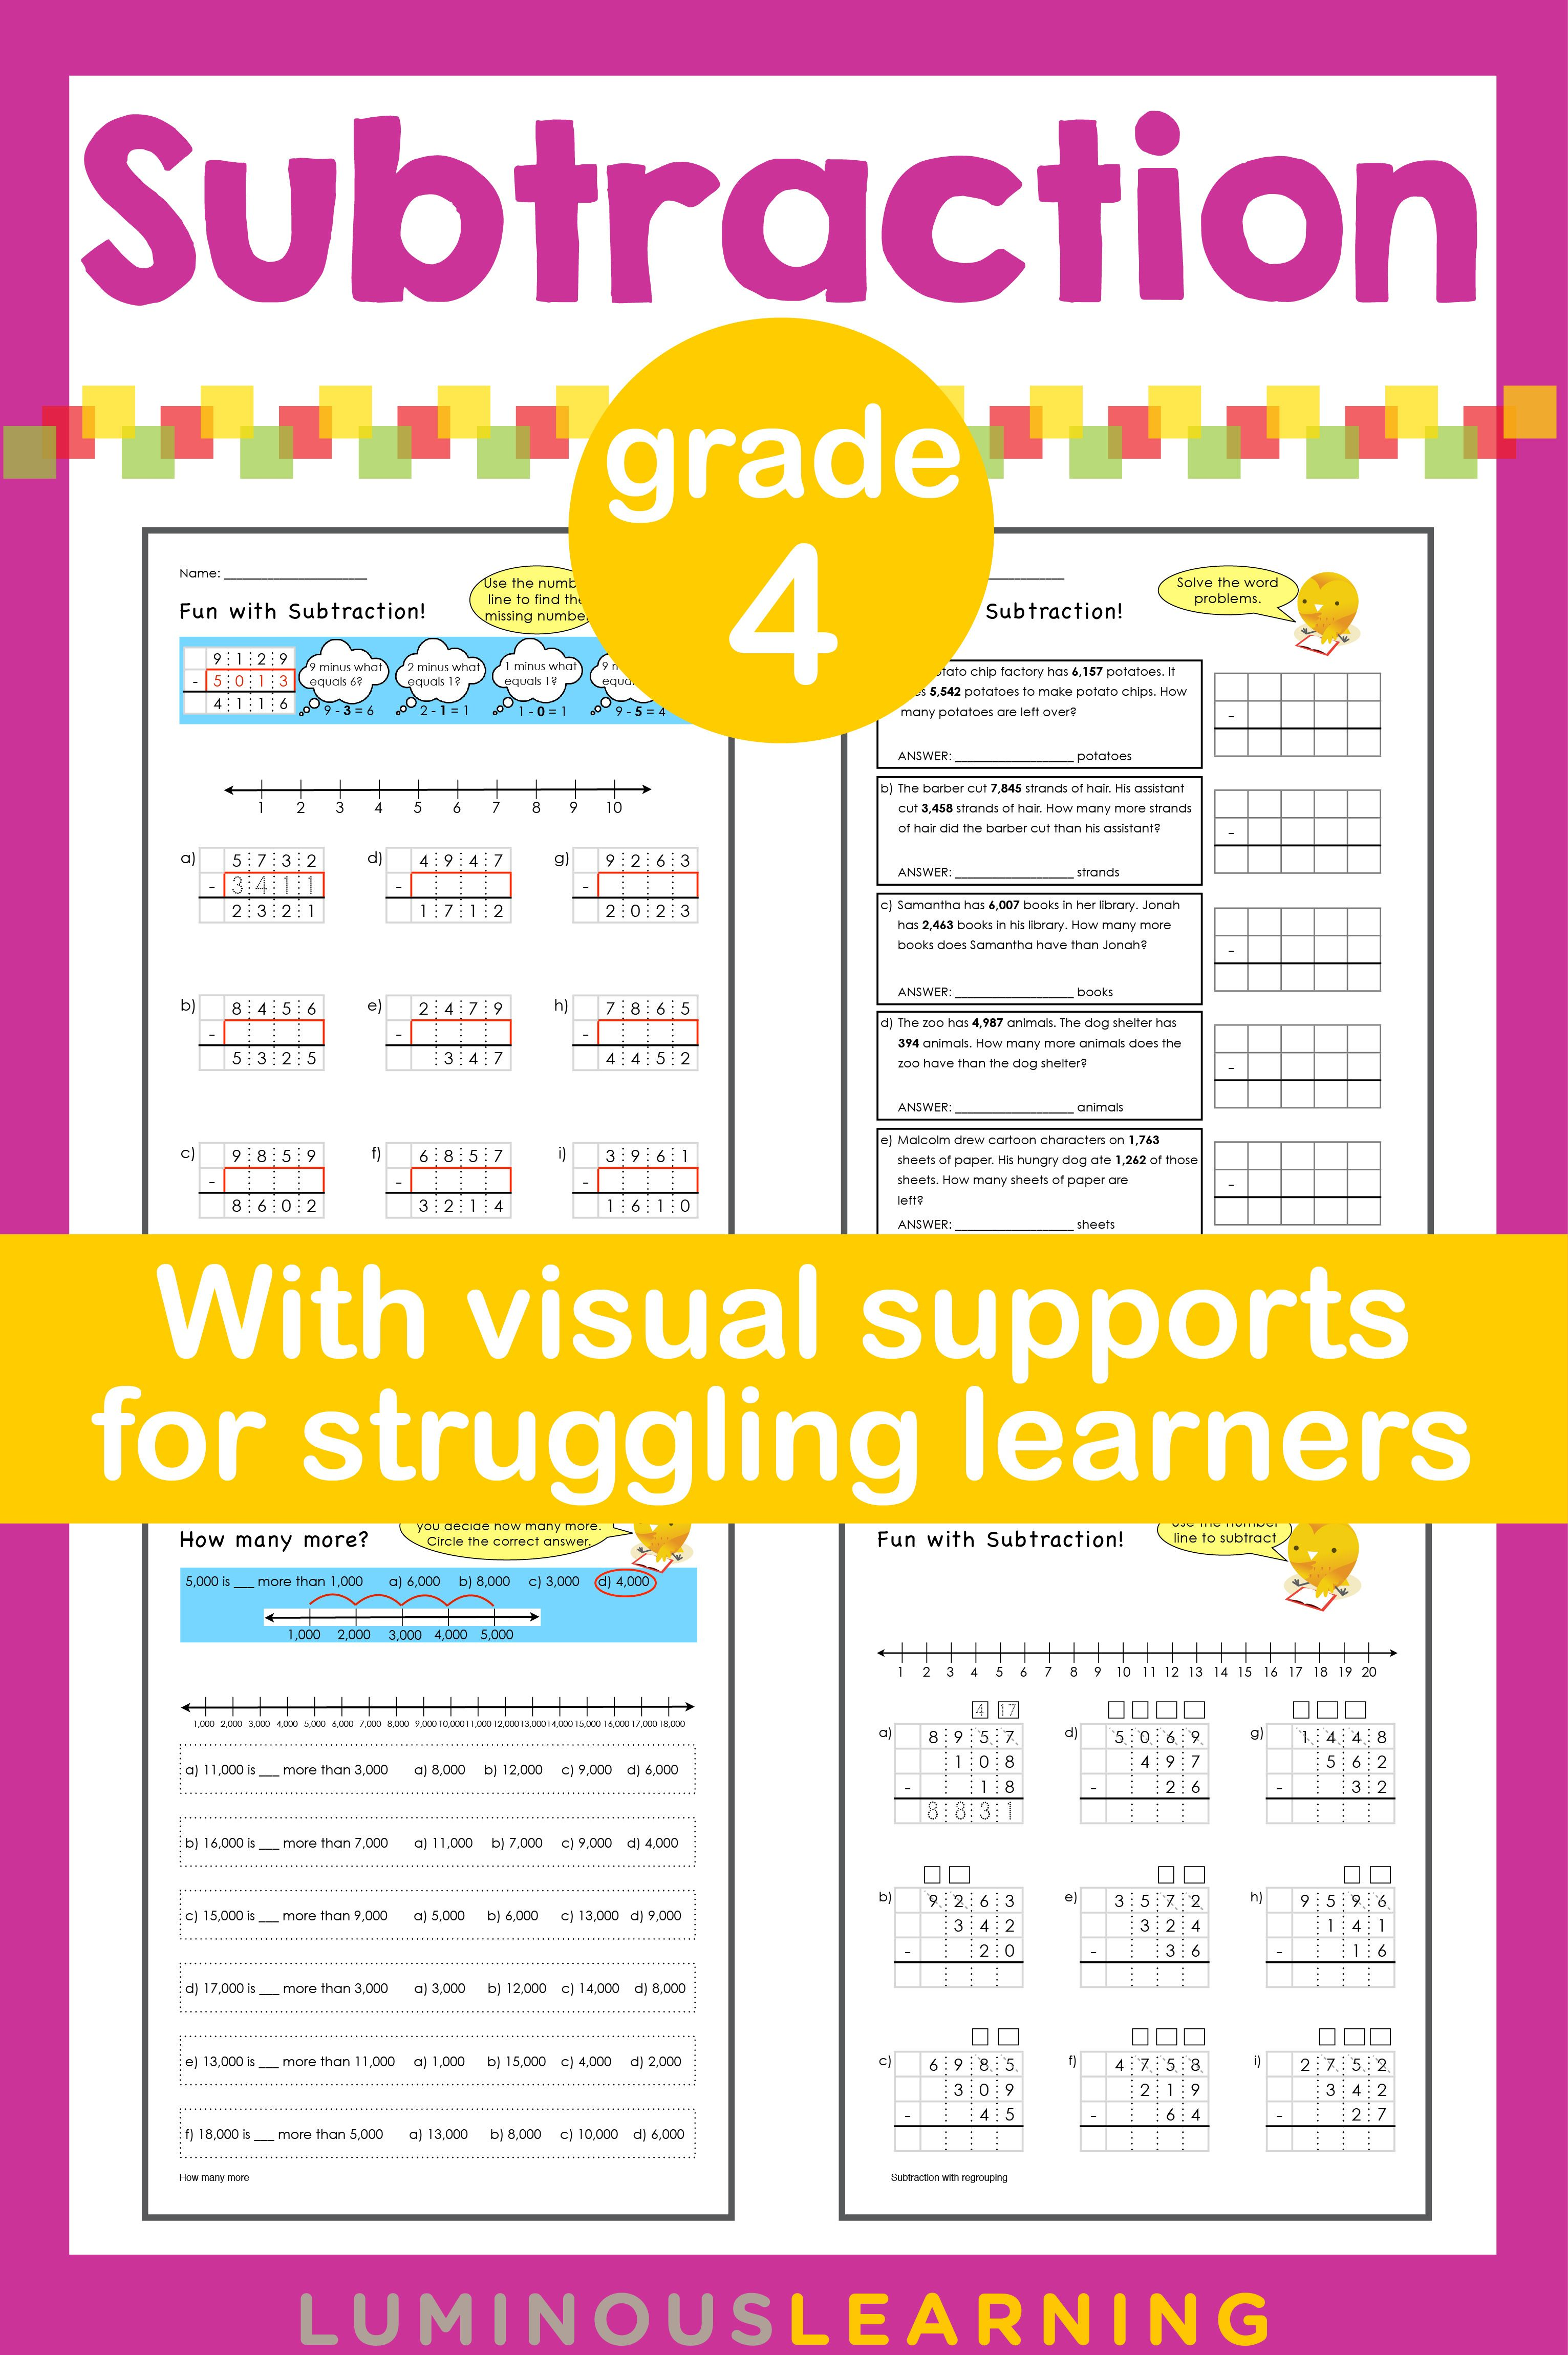 Luminous Learning Grade 4 Subtraction Workbook Is Designed